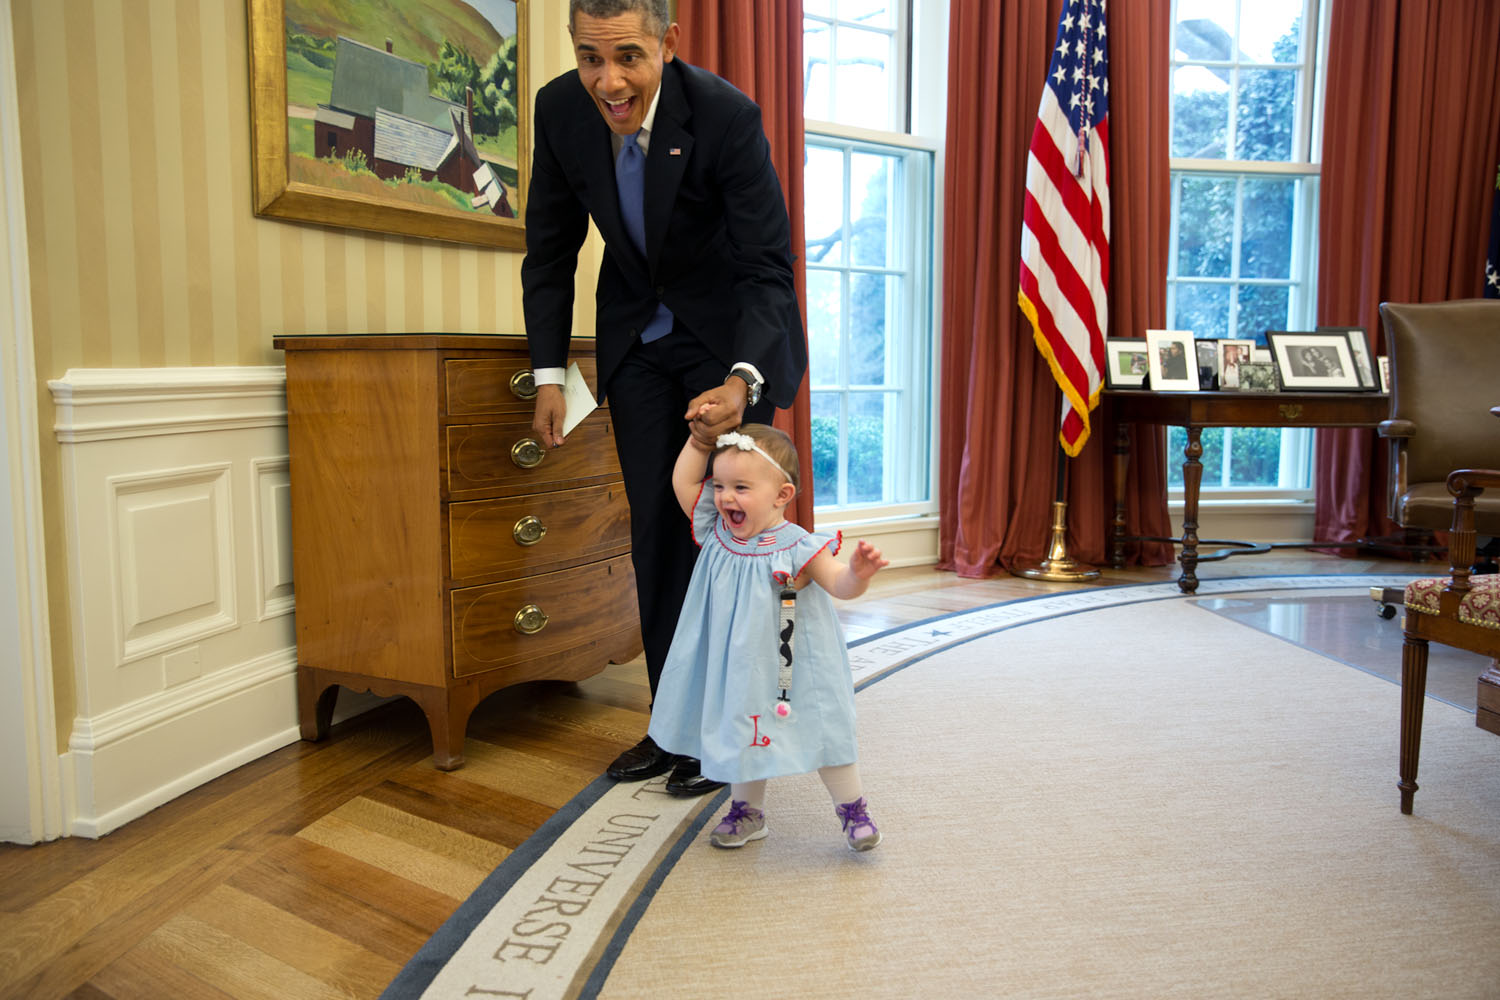 This moment happened when former Deputy Press Secretary Jamie Smith and her family, including one-year-old Rose Smith, stopped by for a departure greet and photograph with the president. Official White House photo by Pete Souza.